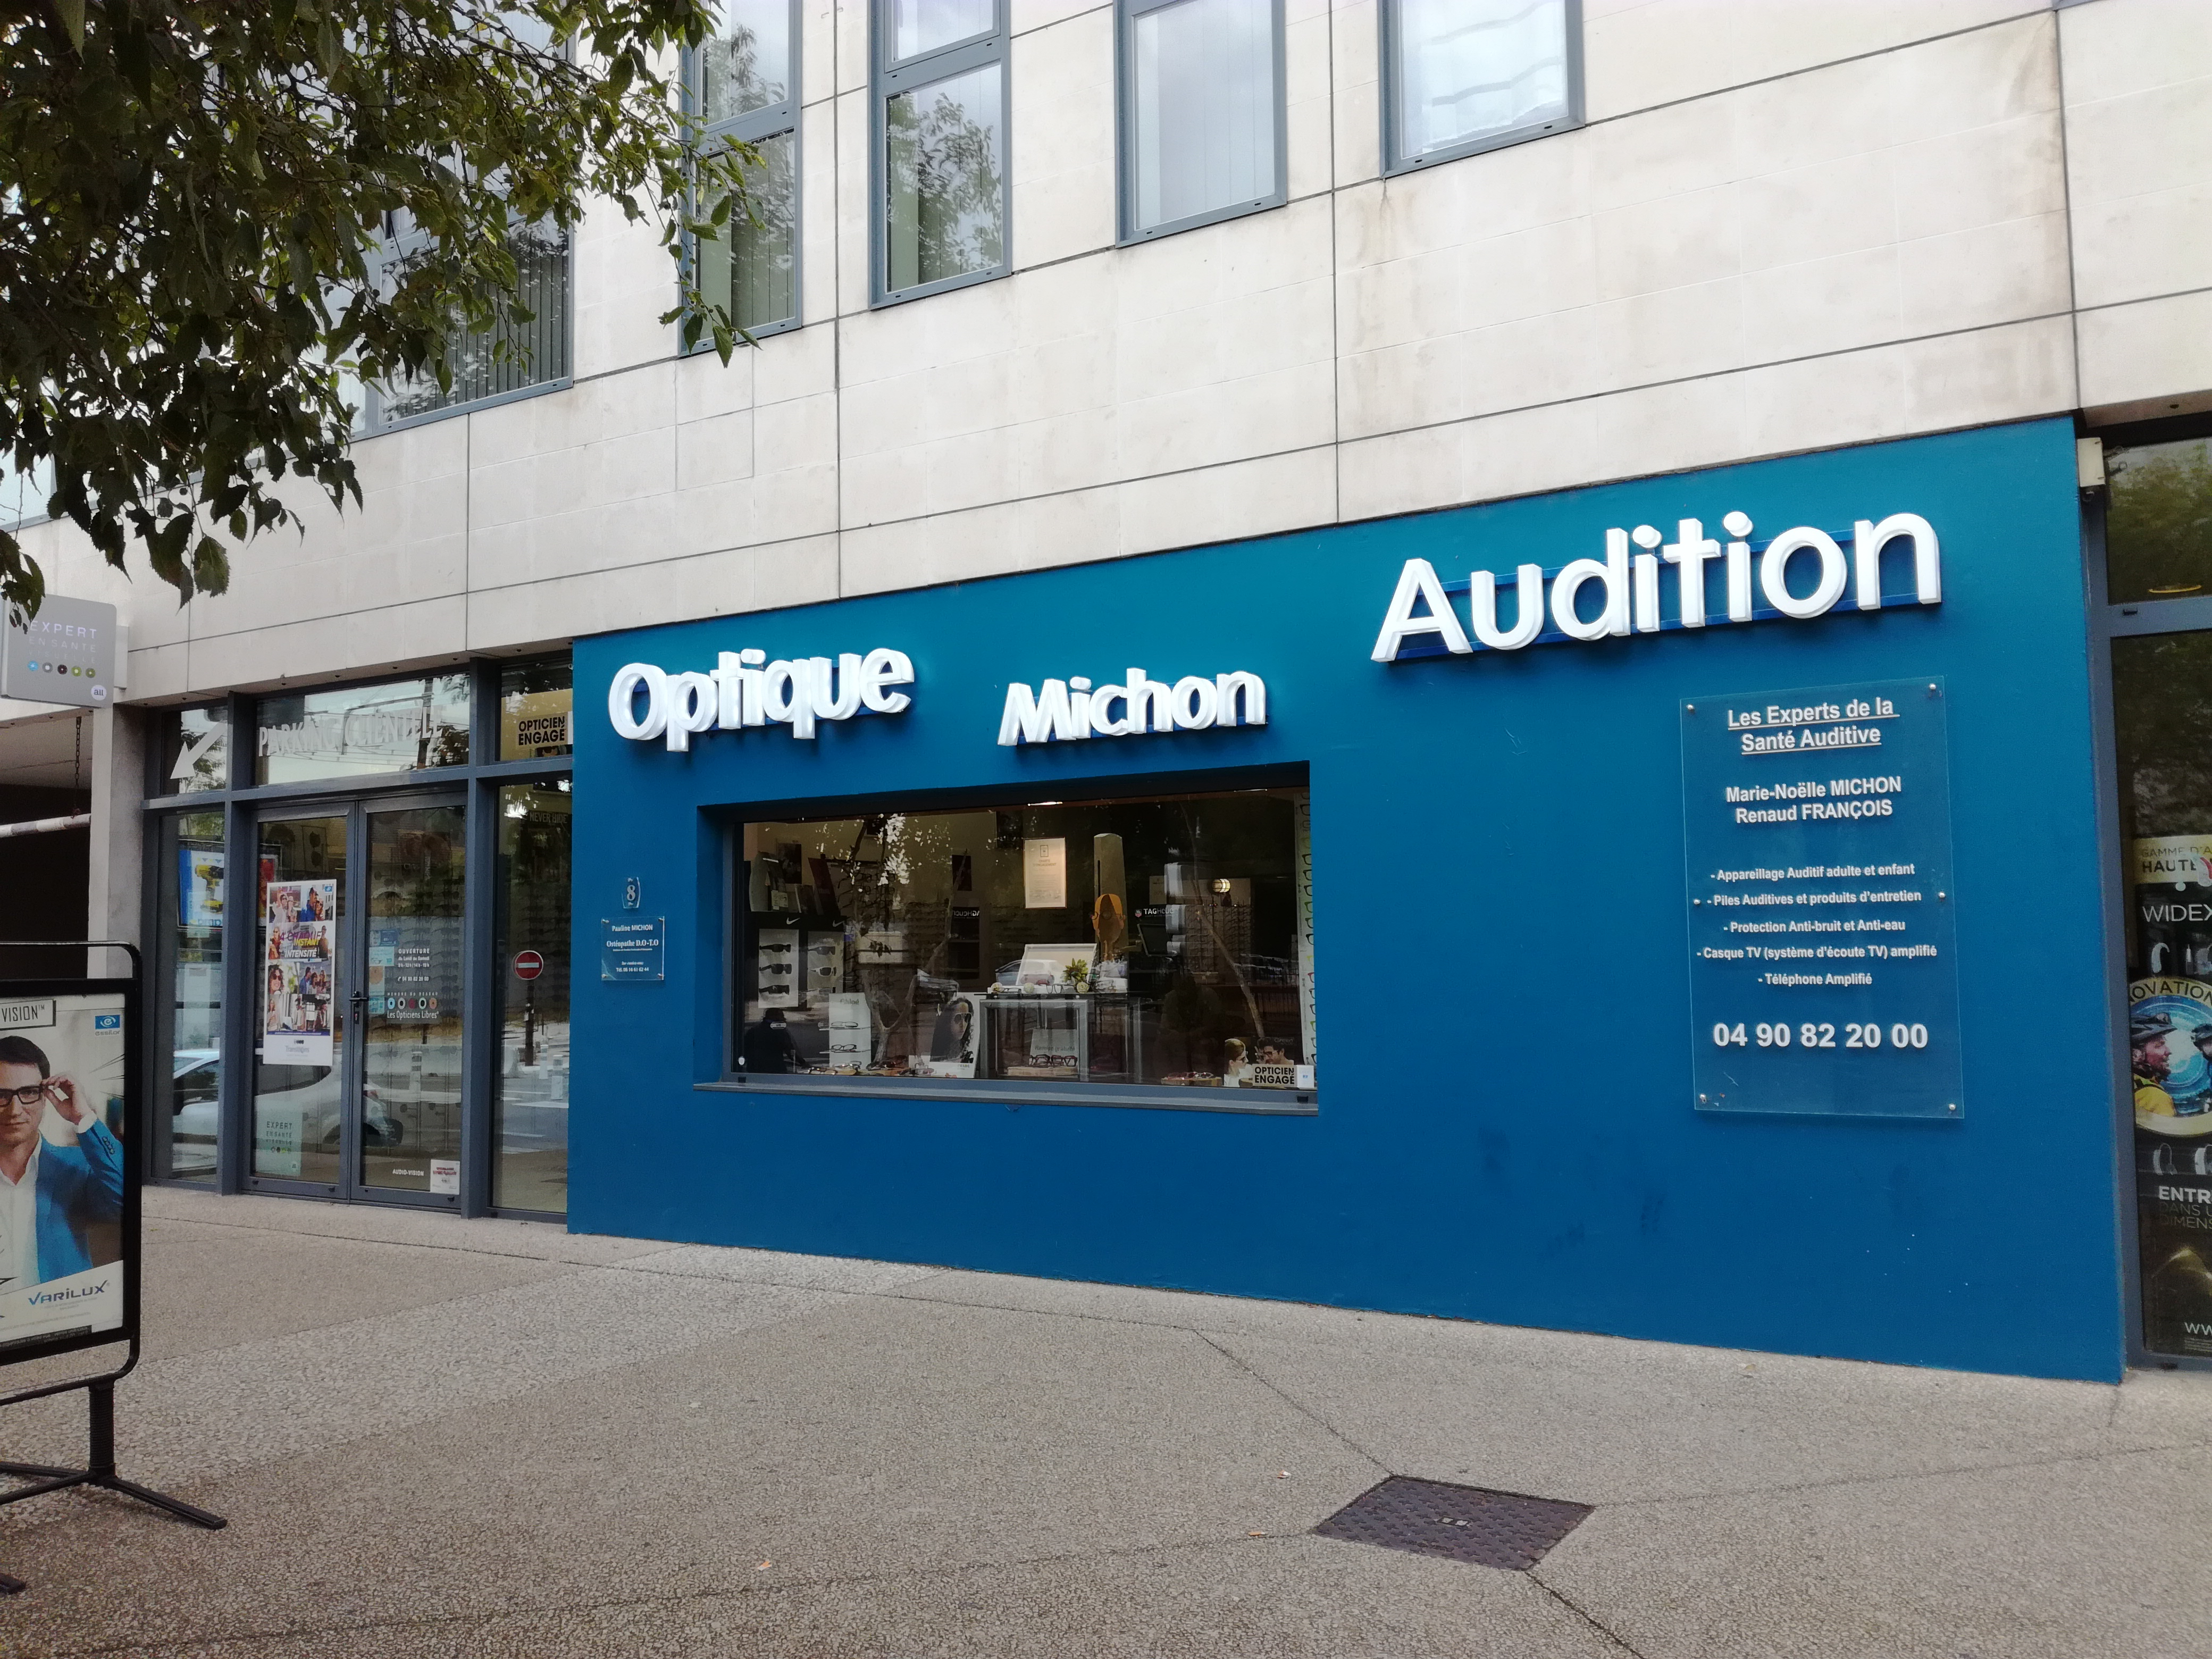 Optique Audition Michon Avignon